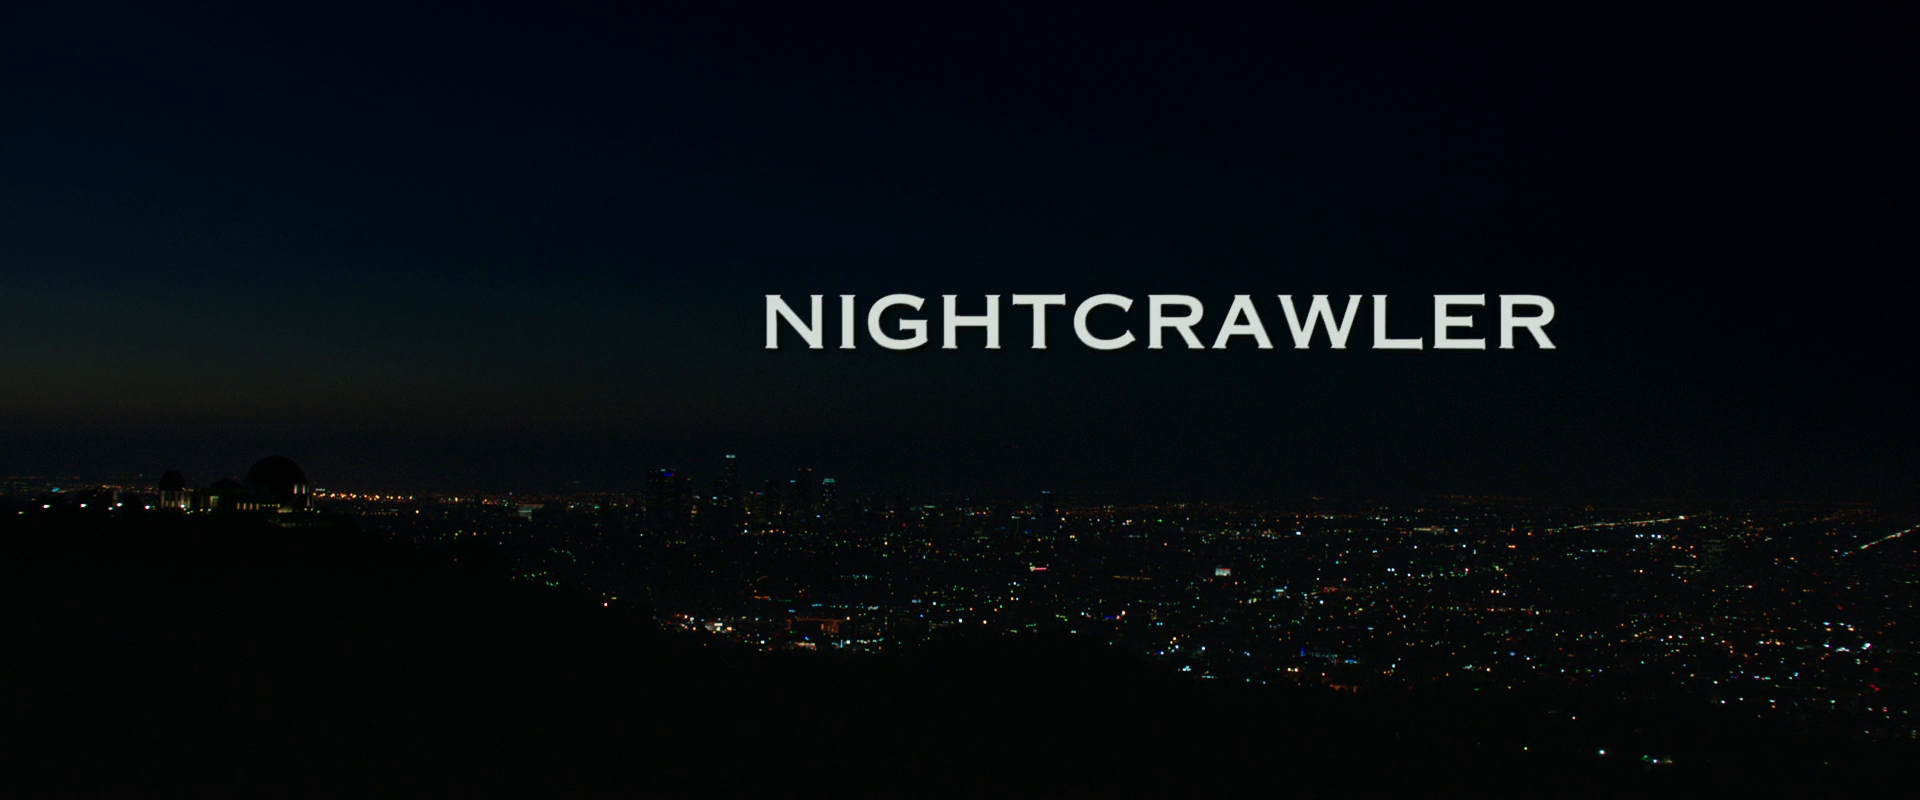 Nightcrawler / Стрингер [2014 / BDRip 1080p] [Crime / Drama / Thriller]